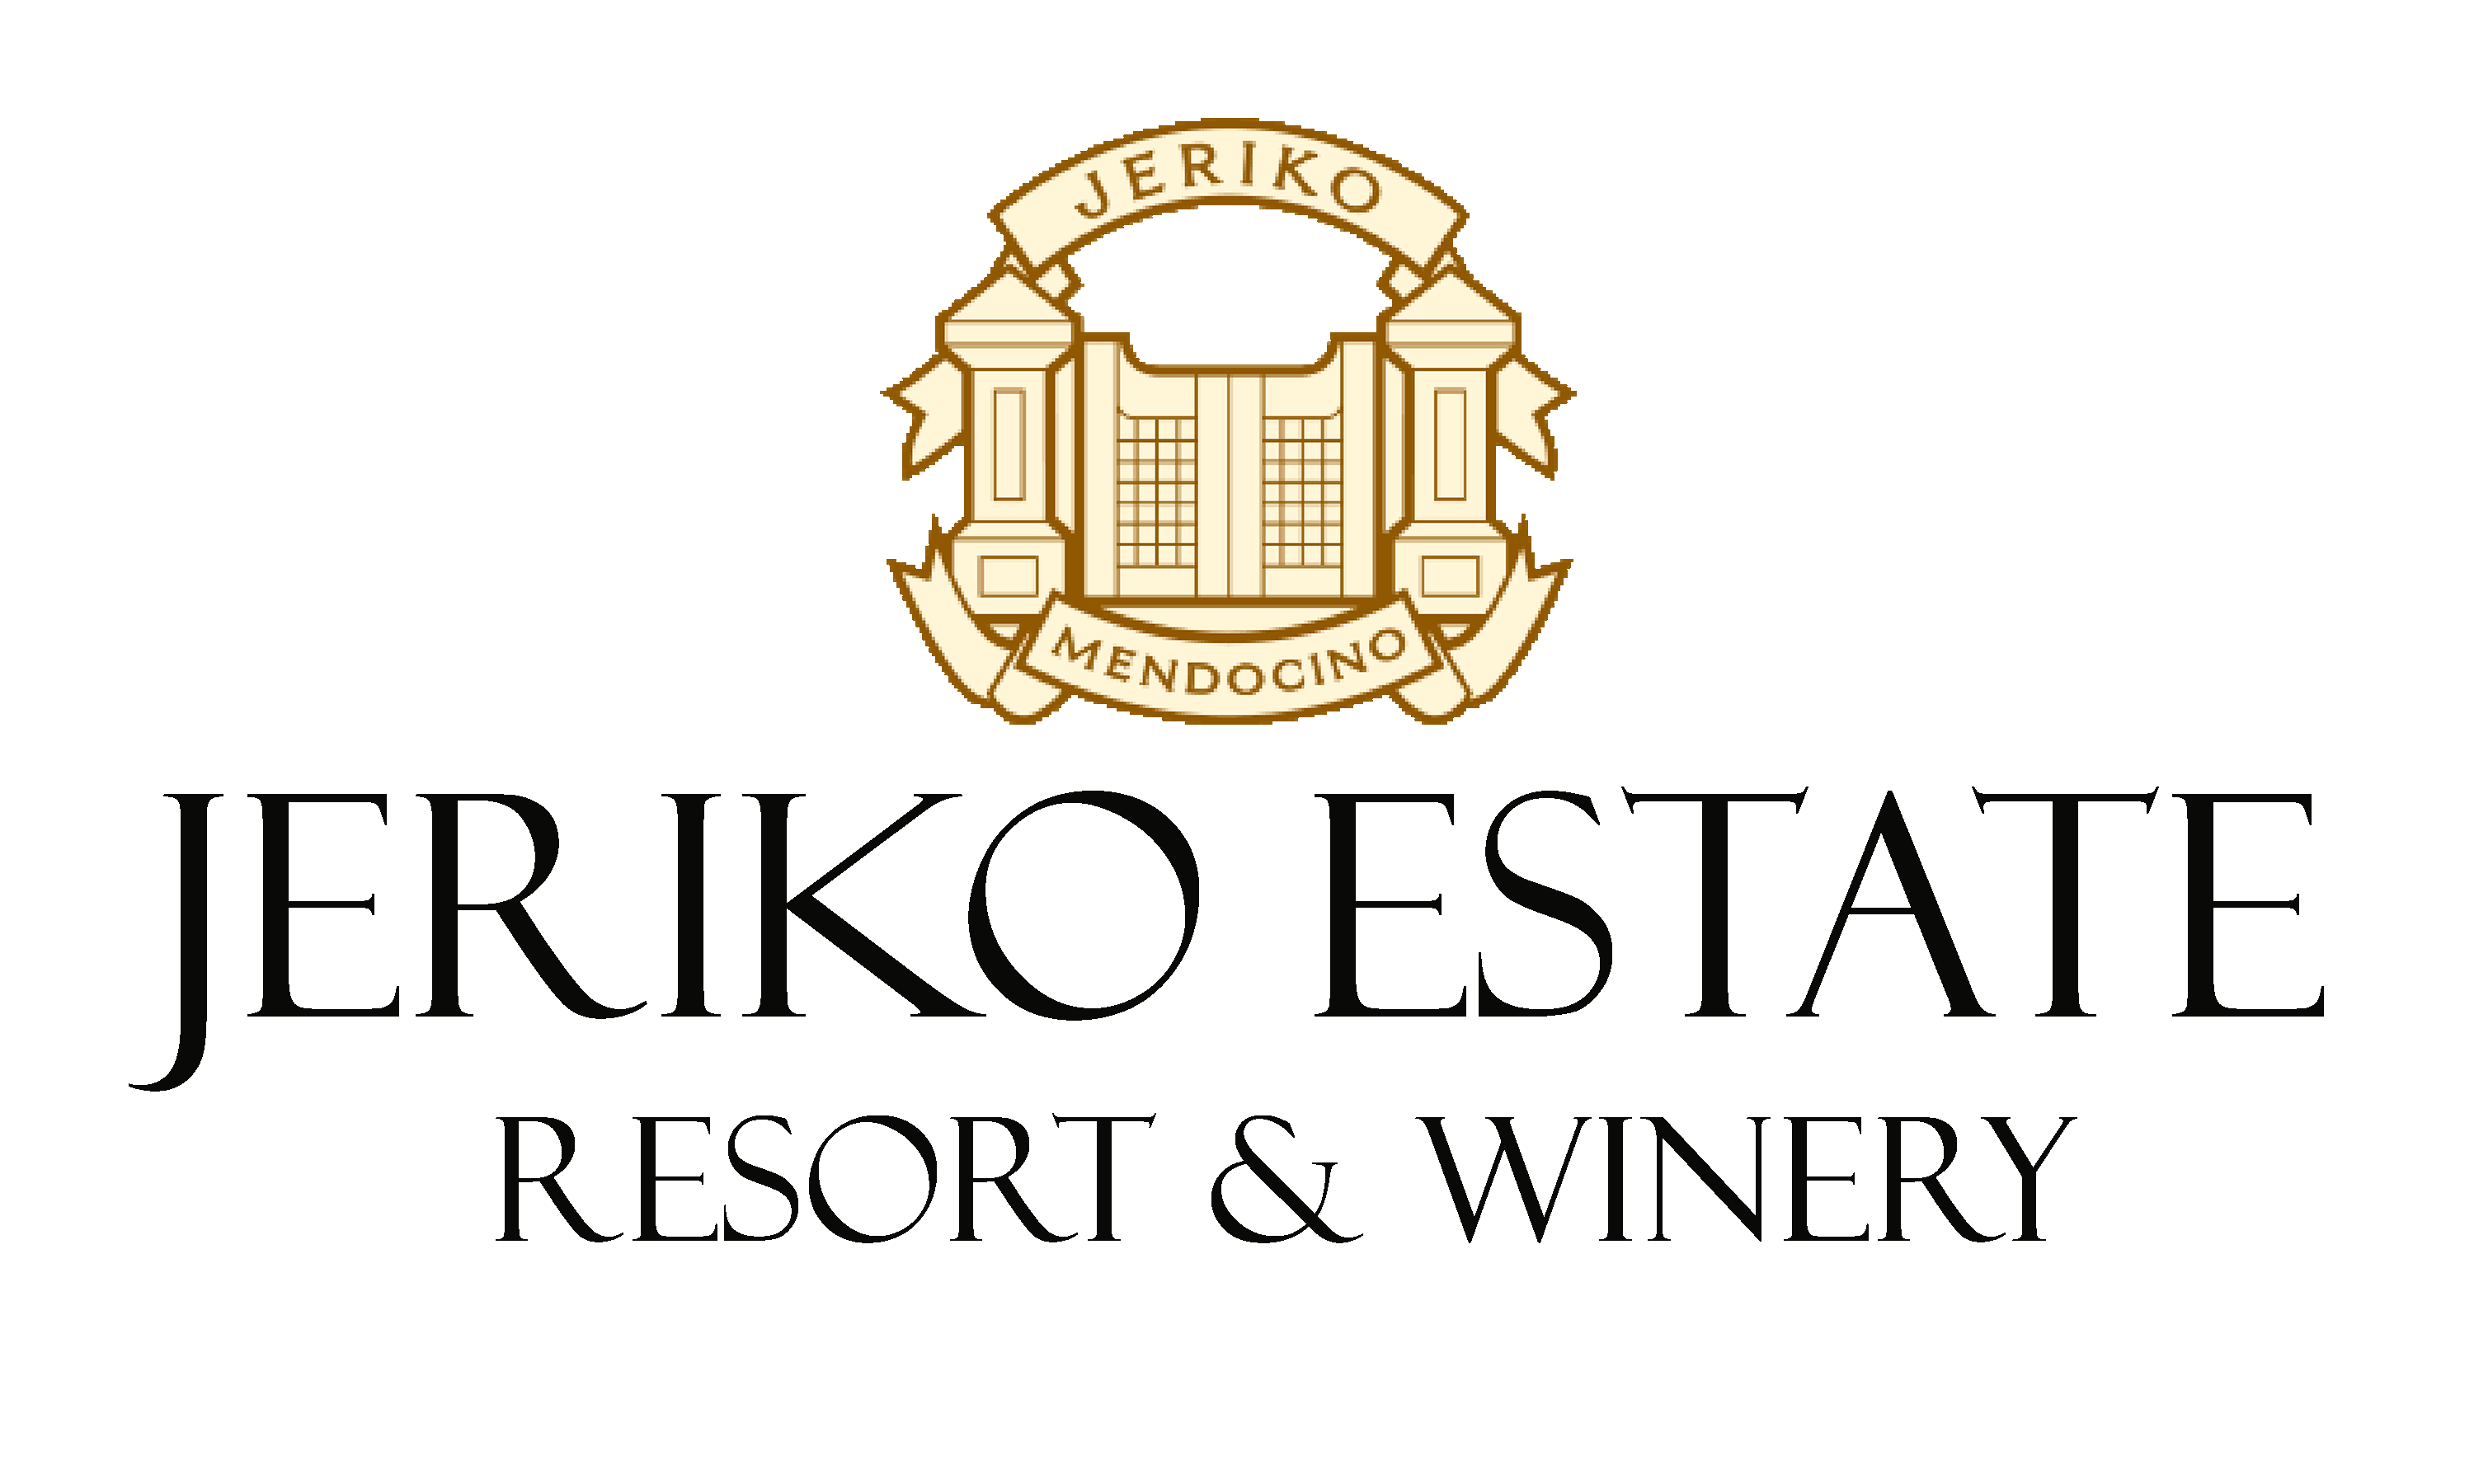 Jeriko-estate-winery-logo